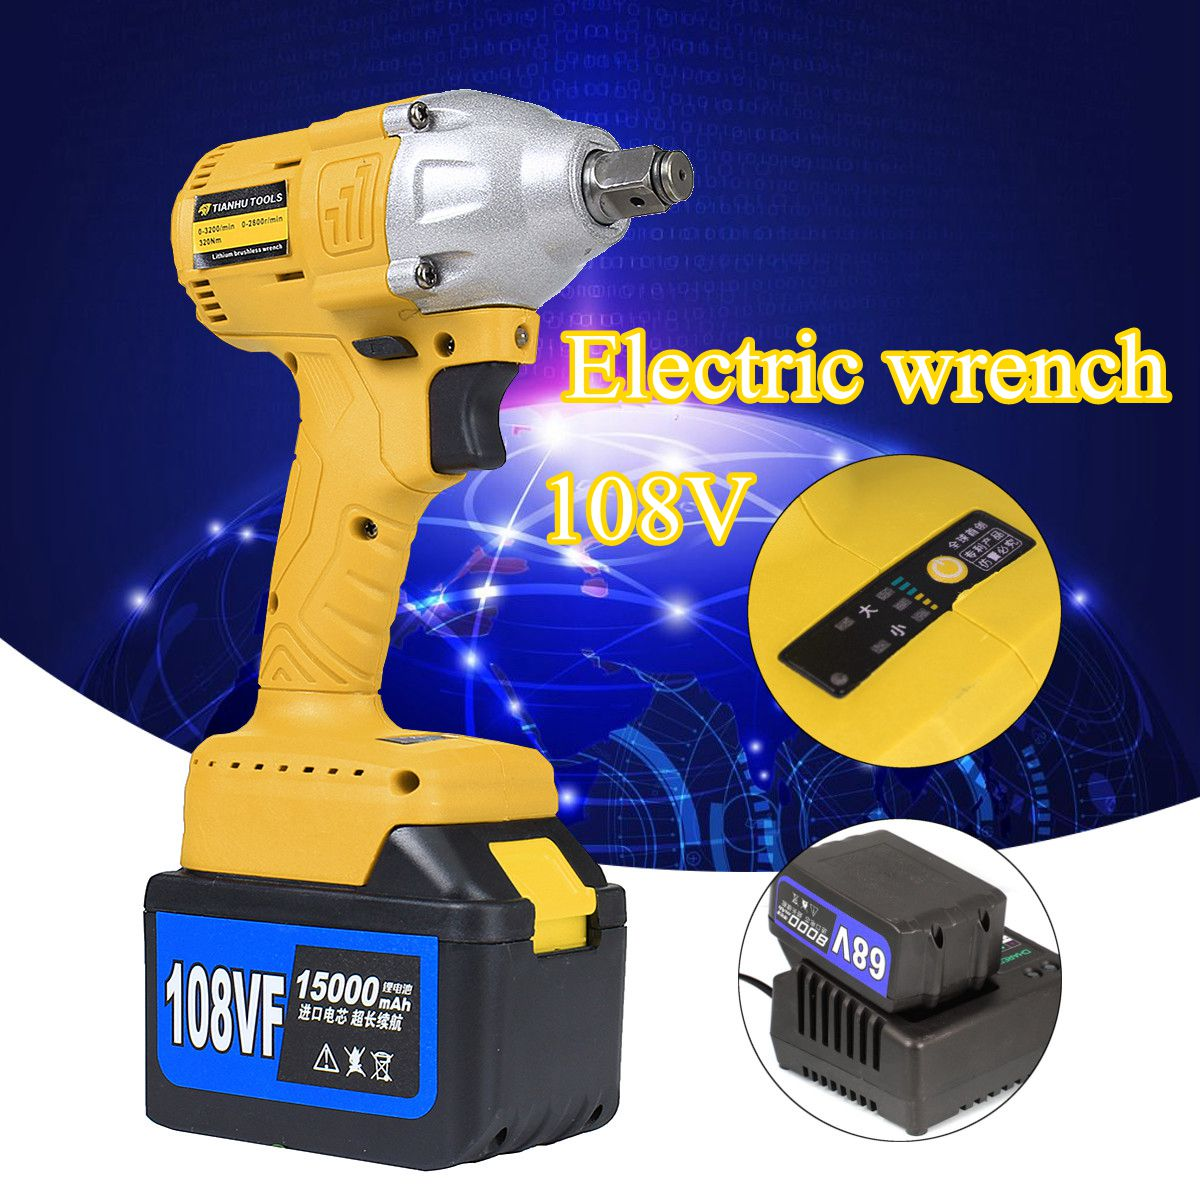 15000mAh 108V Akku elektrisch Bohrschrauber Wrench Lithium-Ionen Koffer Lithium brushless electric wrench 110V-220V sony cp s15 s 15000 mah